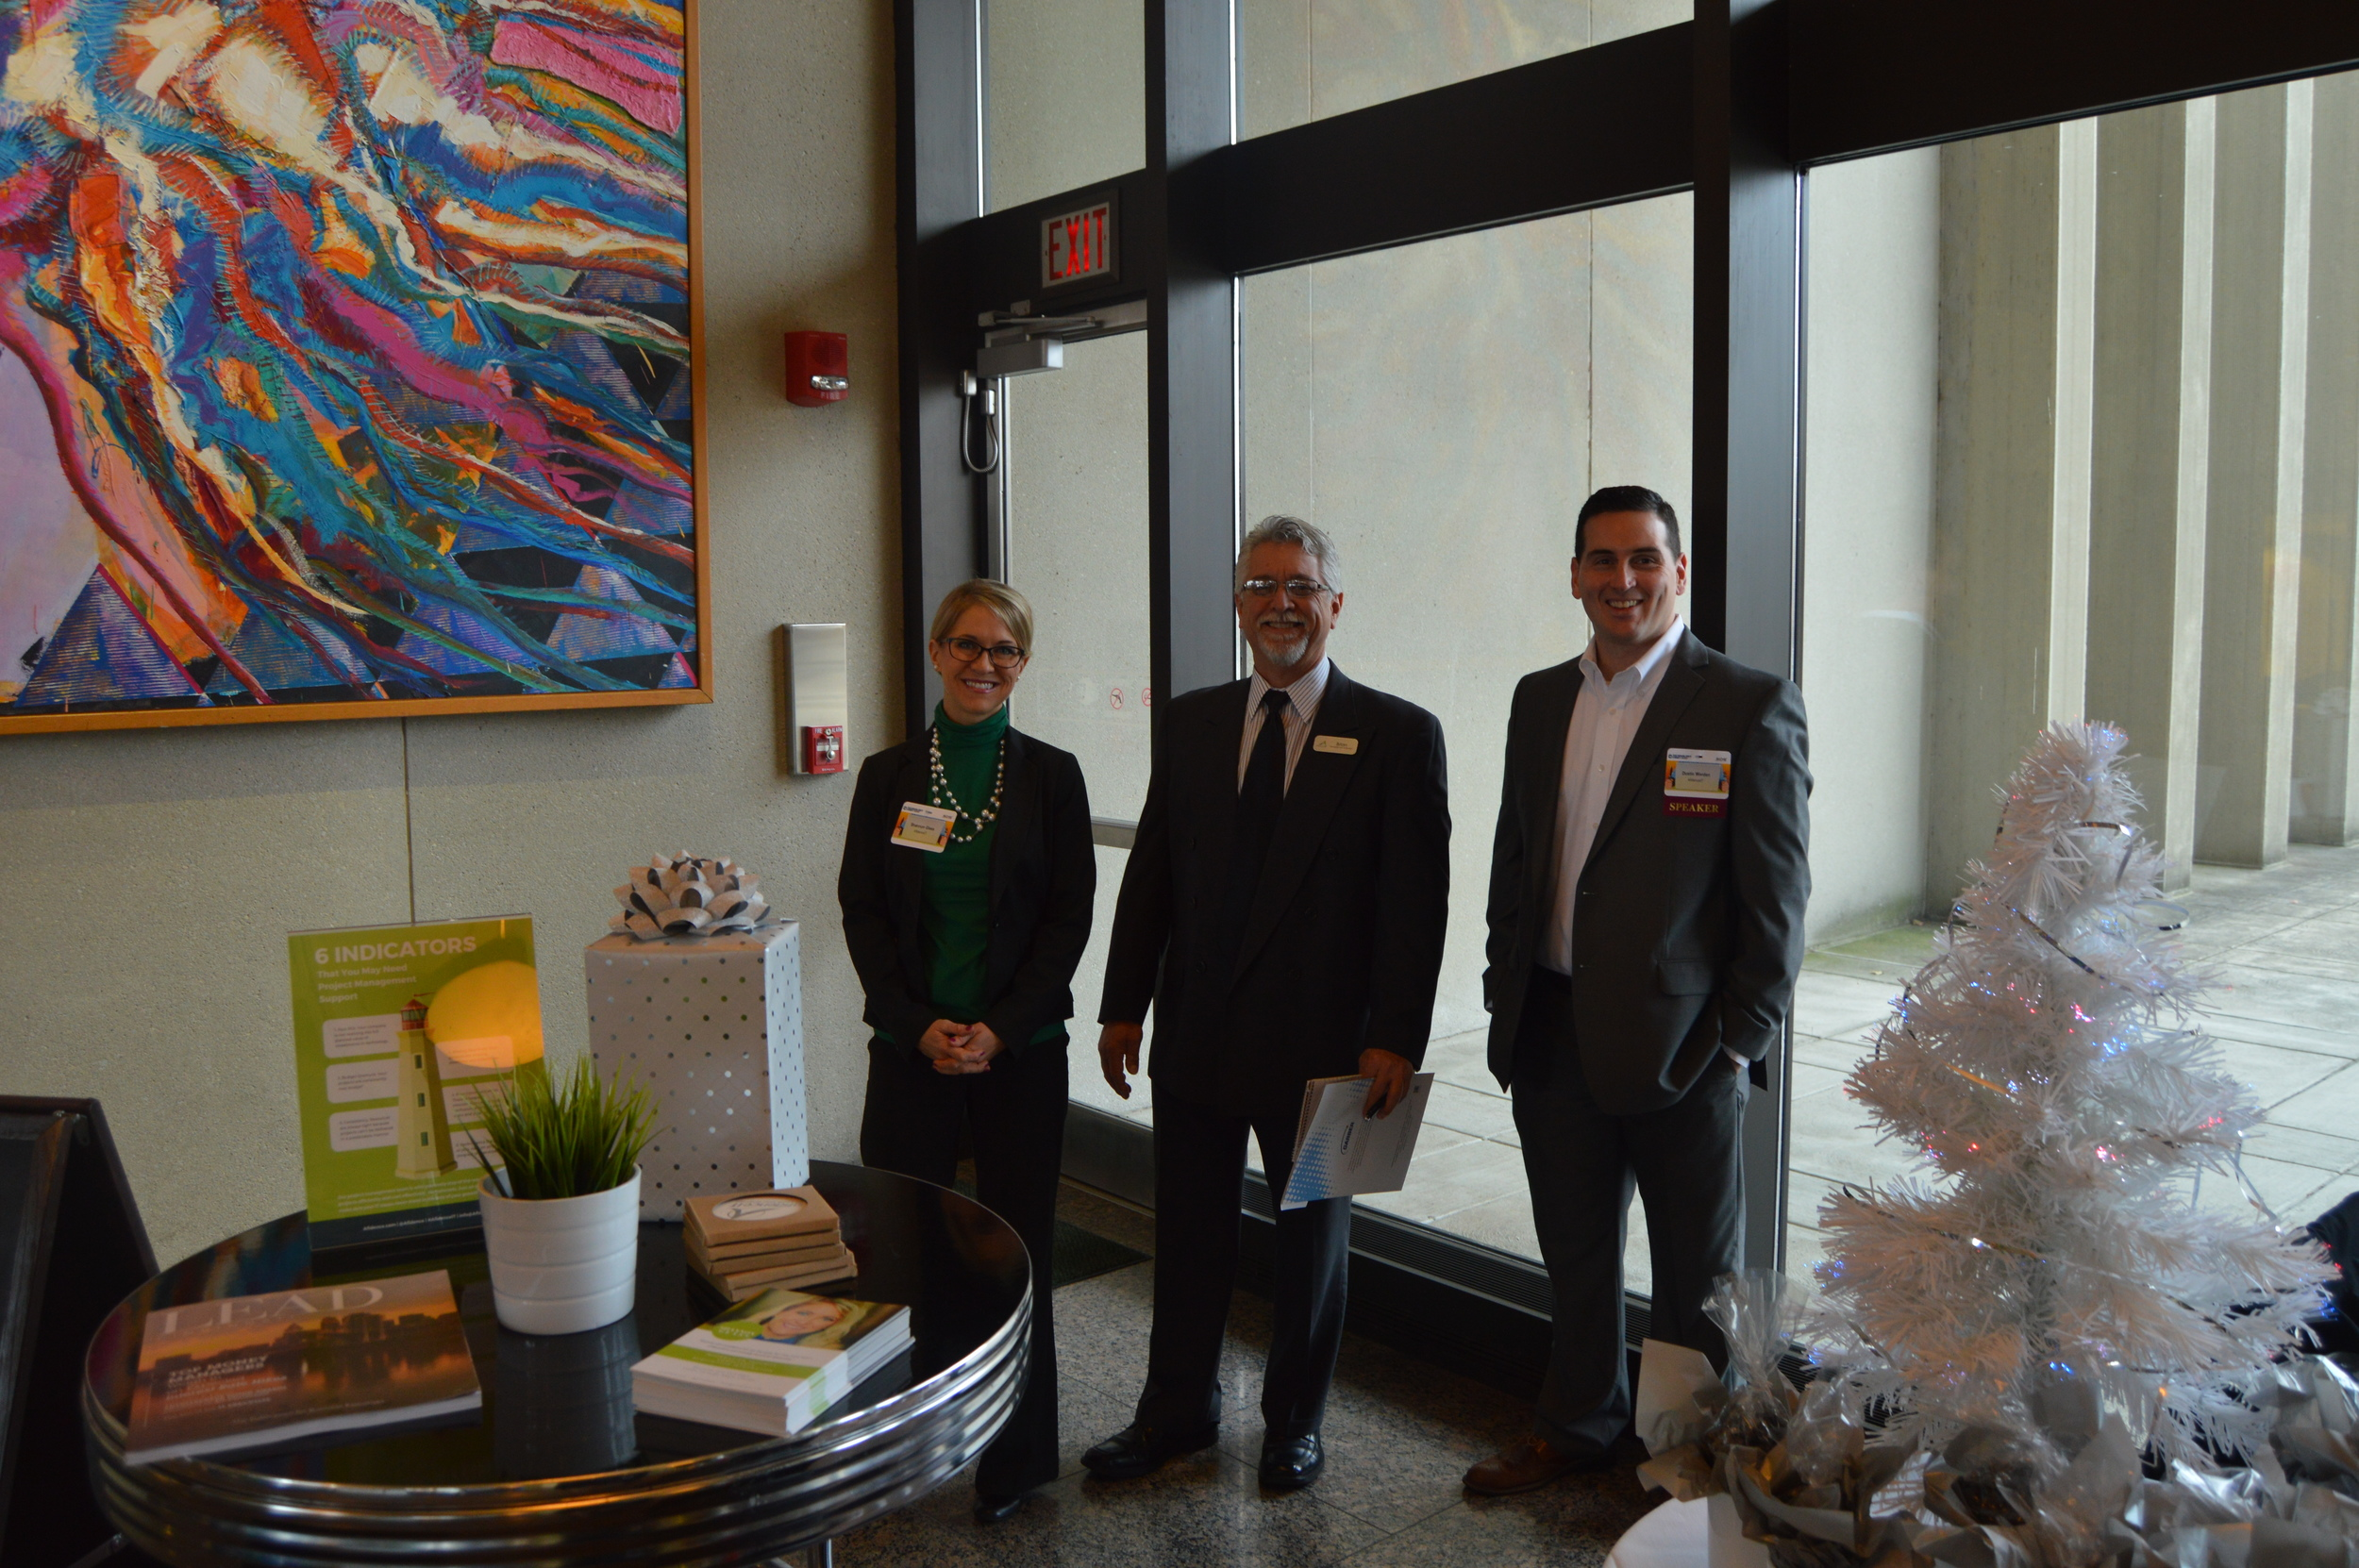 Shannon Glass, Brian Boyce and Dustin Werden Presented at the Taste of IT.